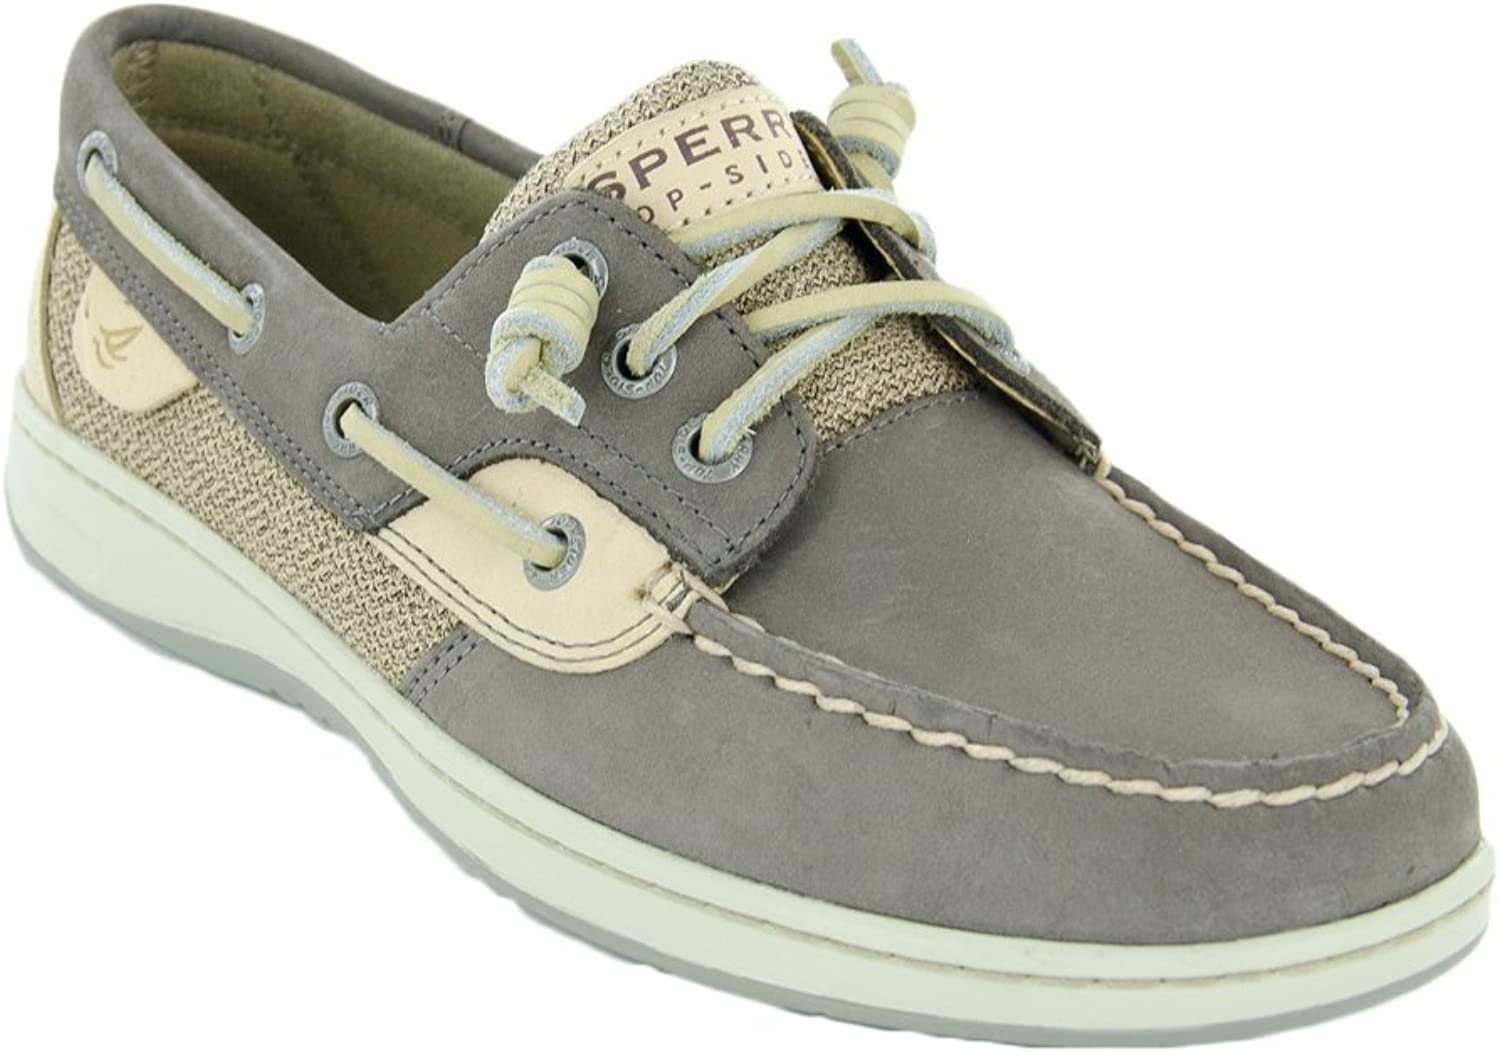 Sperry Top-Sider Women's Ivyfish Boat shoes (6 B(M) US, Graphite)